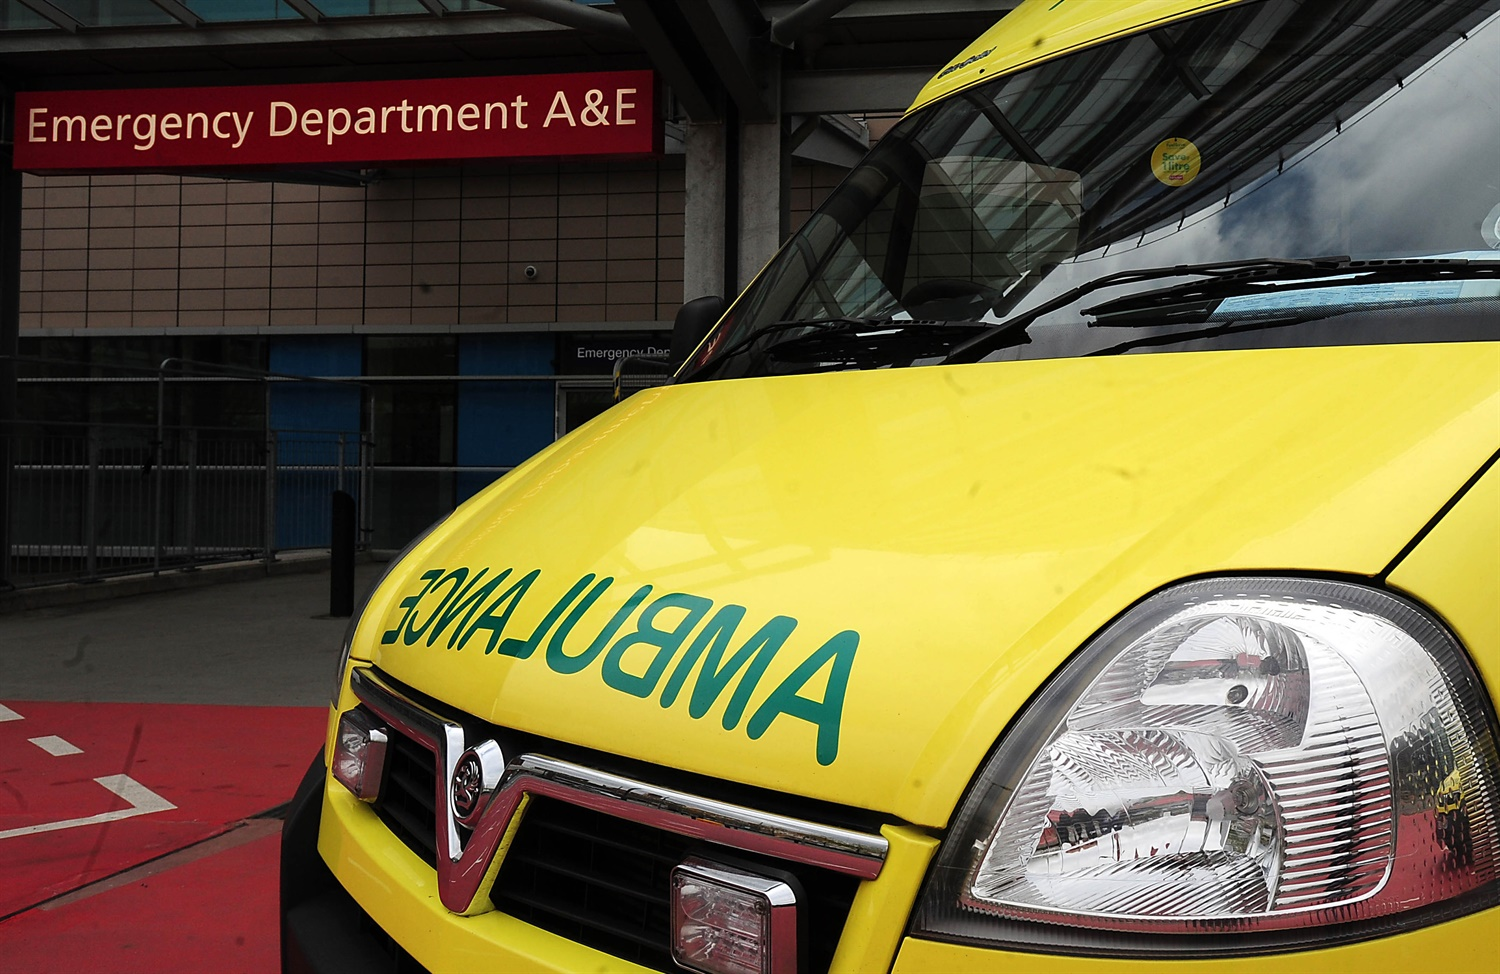 NHS to combine emergency services – urgent care Vanguards announced